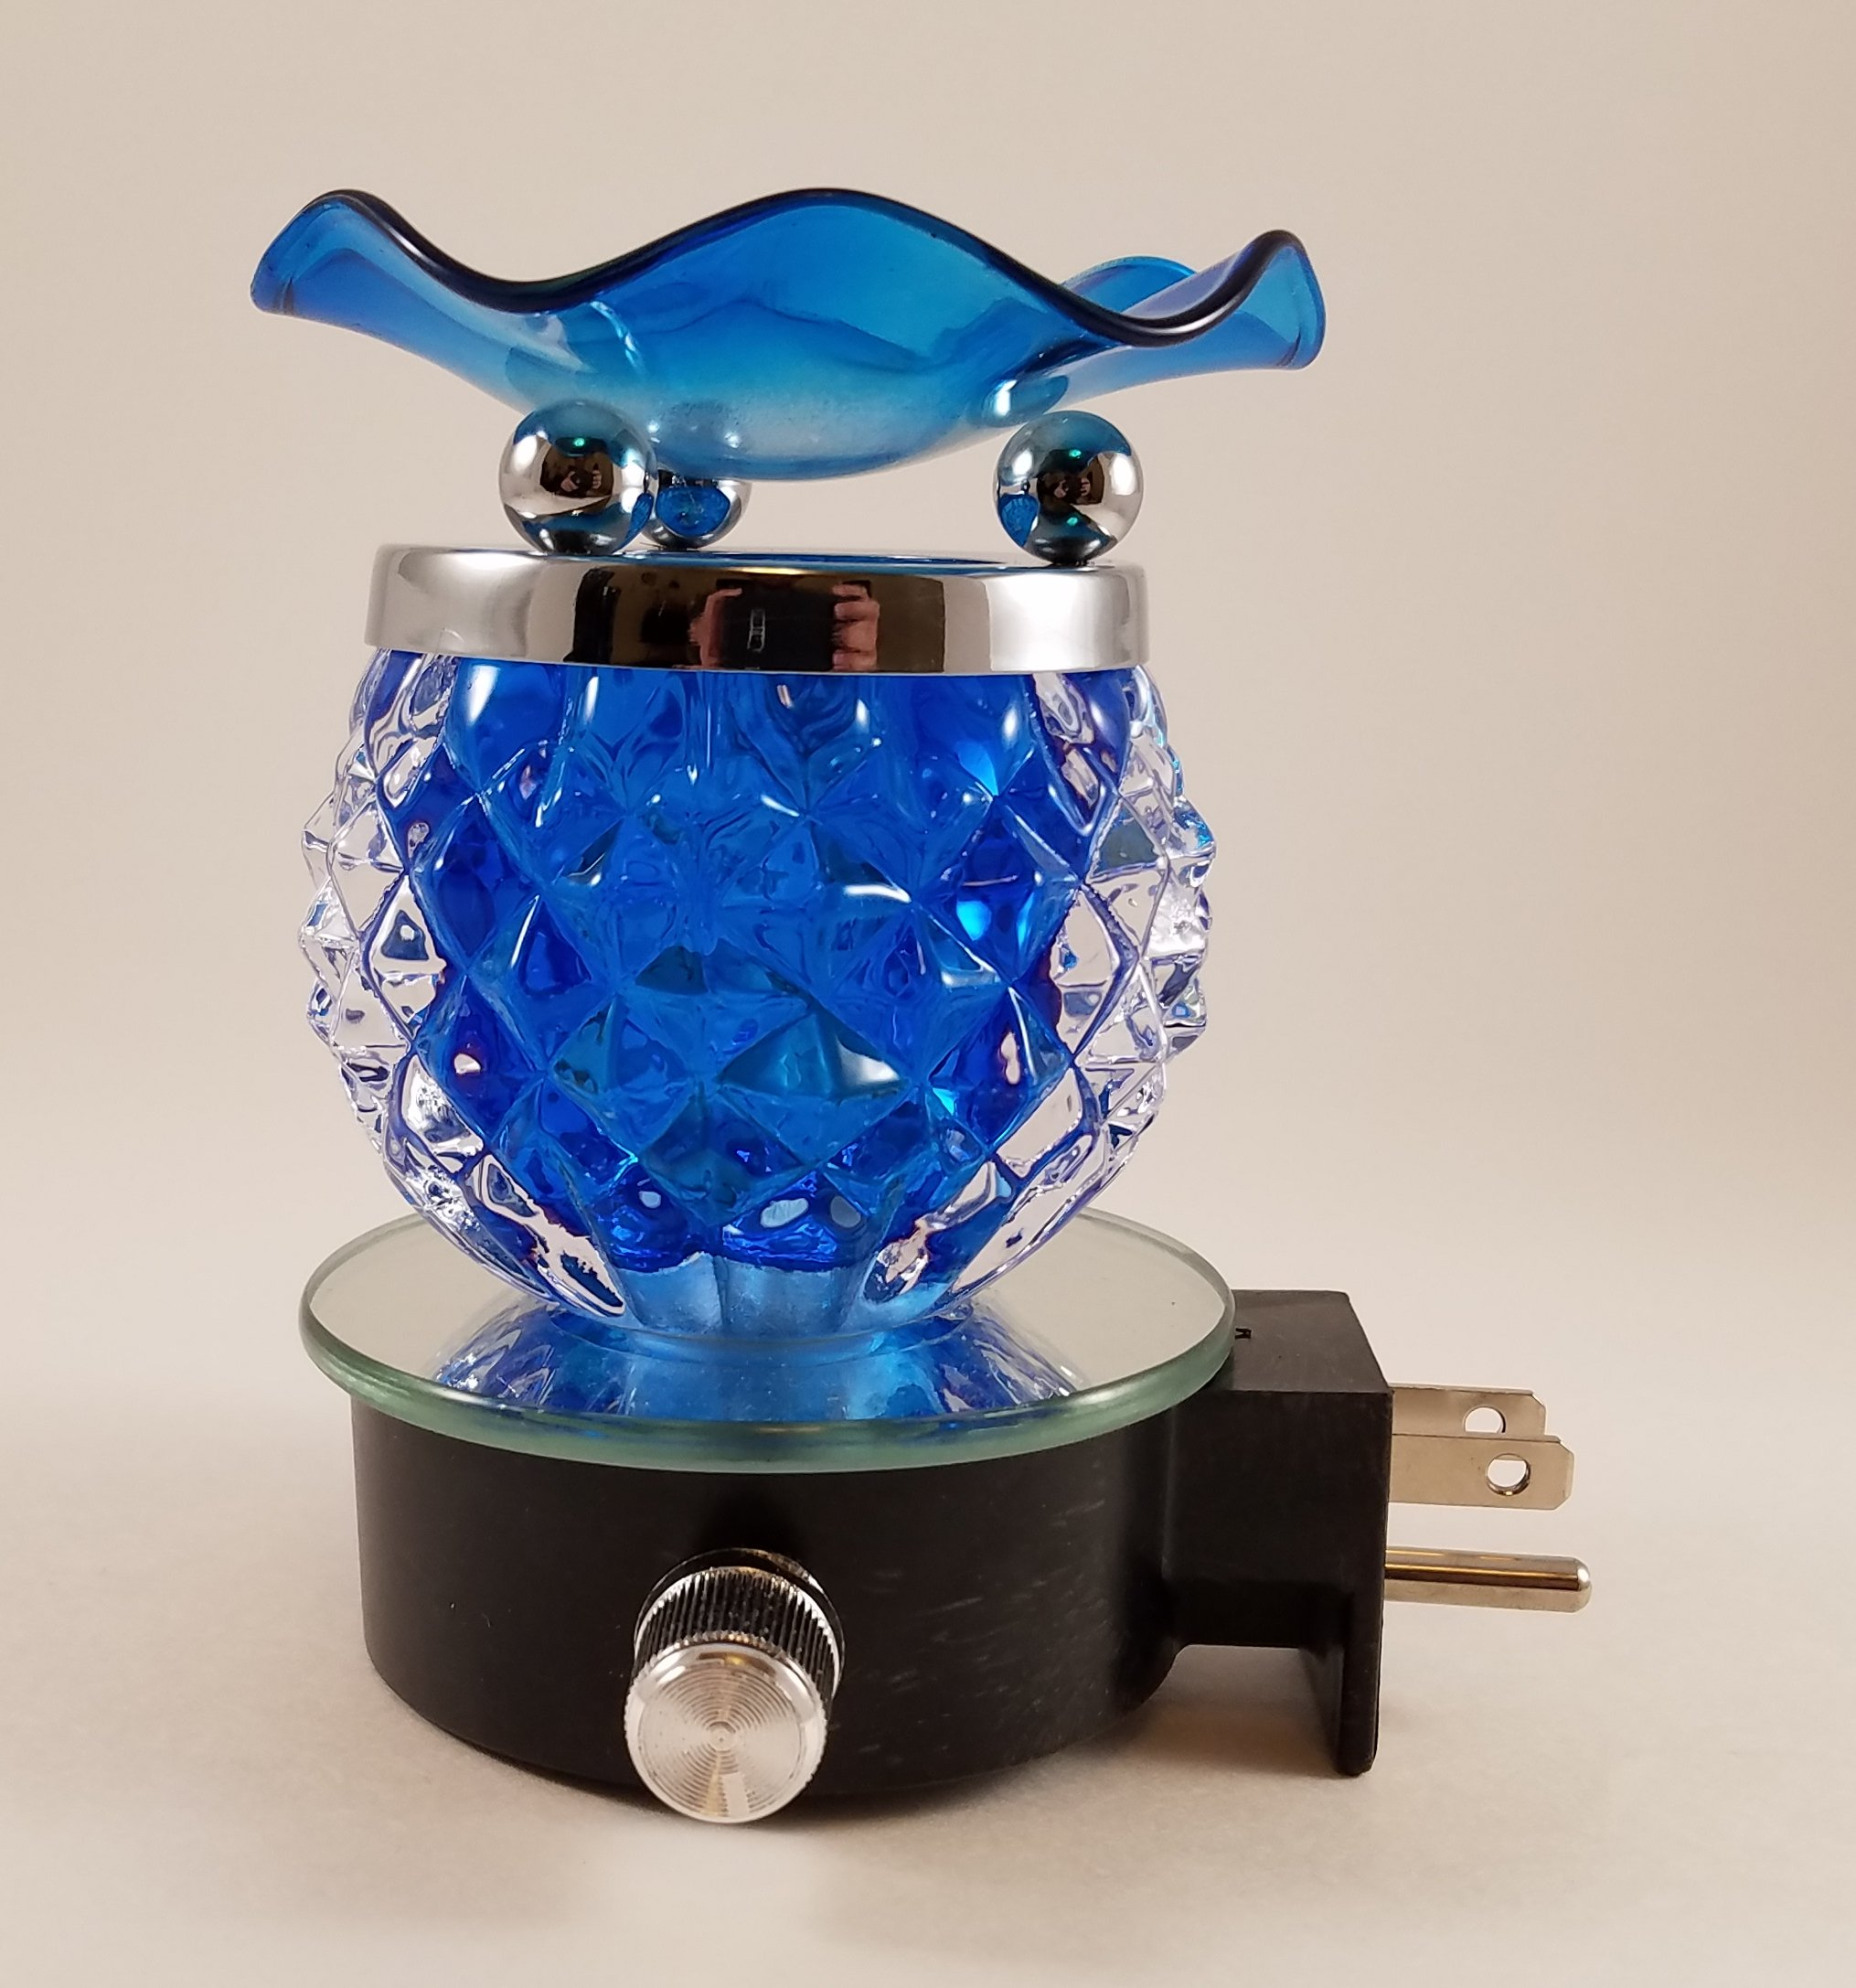 Plug-In Aromatherapy Fragrance Lamp W/Dimmer Electric Oil Warmer/Burner by Modern Family Life